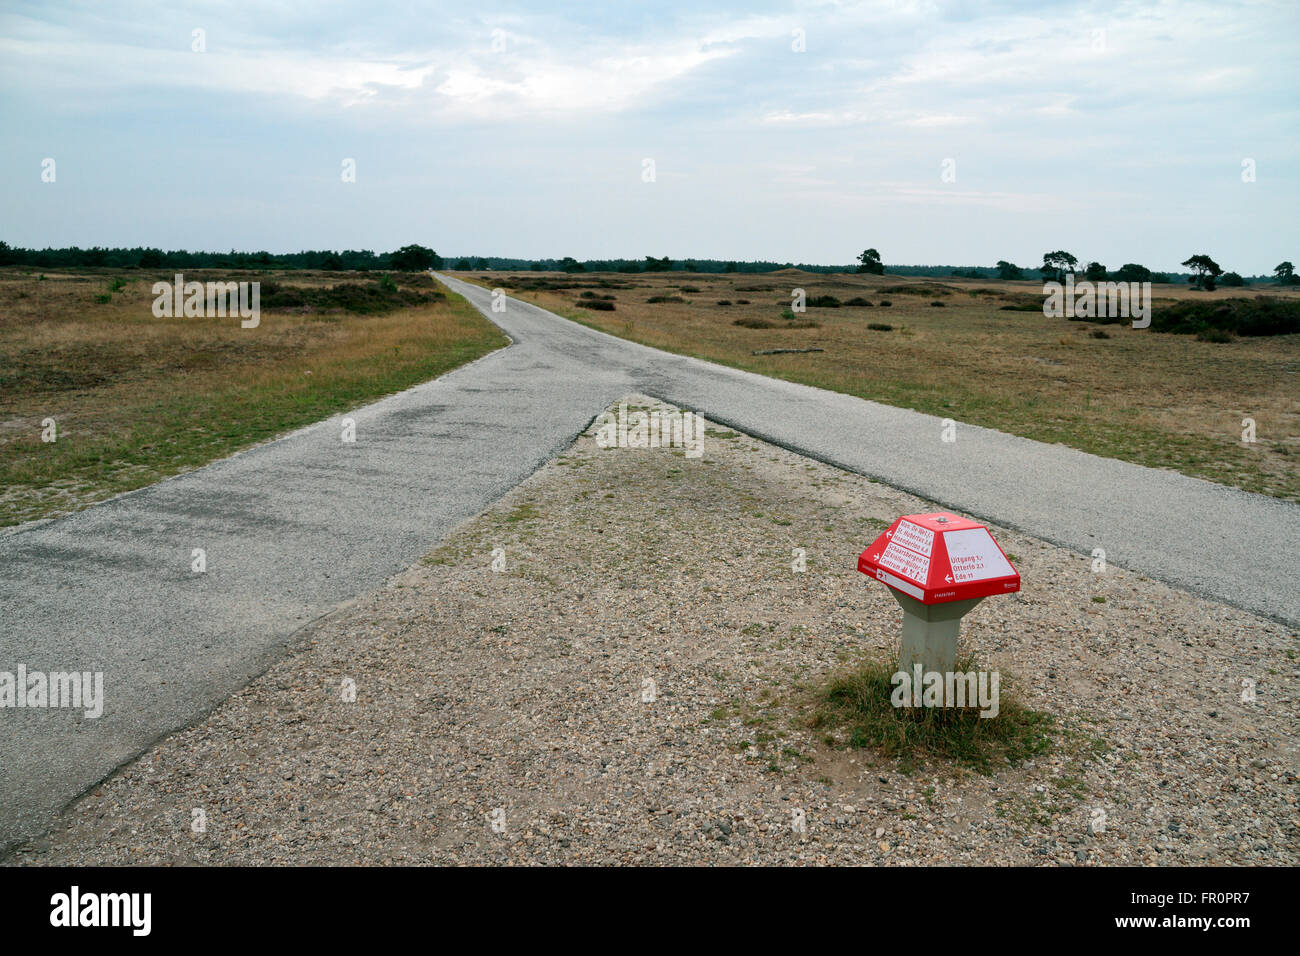 Cycle path direction marker in the De Hoge Veluwe National Park, Arnhem, Gelderland, Netherlands. - Stock Image